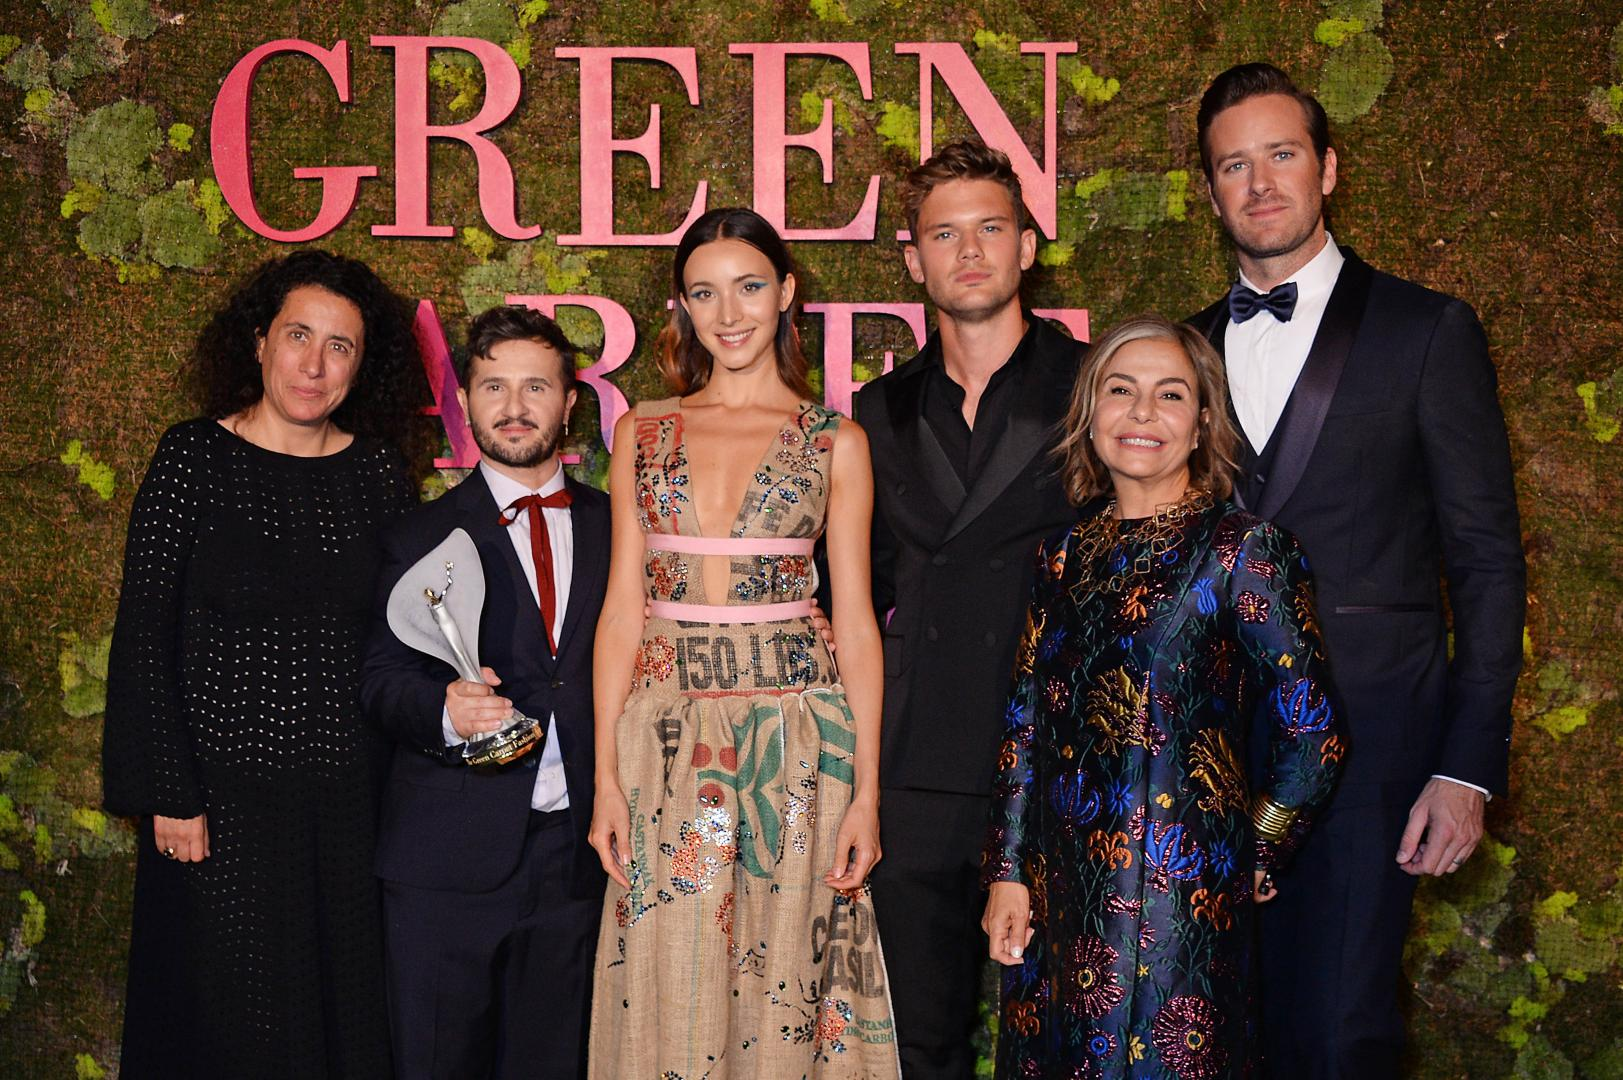 Sara Maino with Franca Sozzani Green Carpet Award for Best Emerging Designer 2018 winner, Gilberto Calzolari. The model wears Calzolari's distinctive gown made from used coffee been sacks. Also pictured Jeremy Irvine, Desirée Bollier, Armie Hammer.